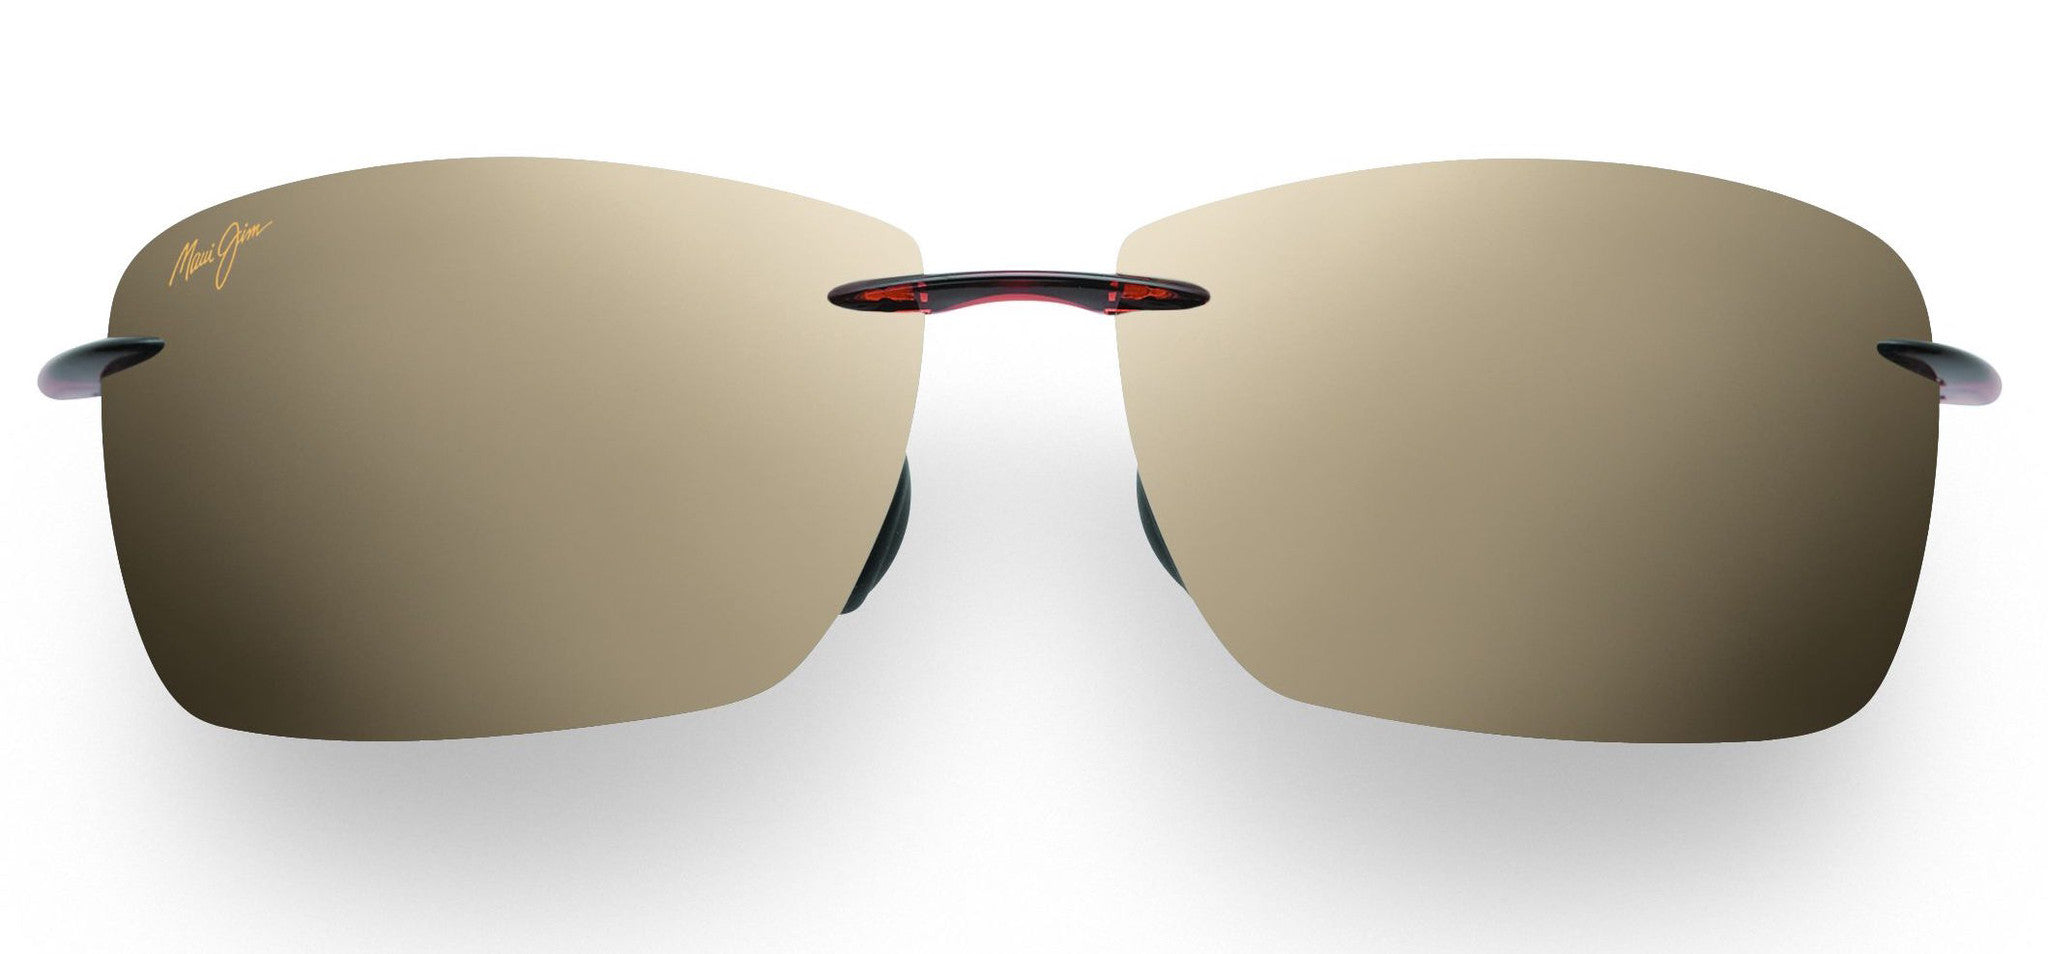 dbde64f53507 Maui Jim Lighthouse 423 Sunglasses span - Rootbeer with Polarized HCL ...